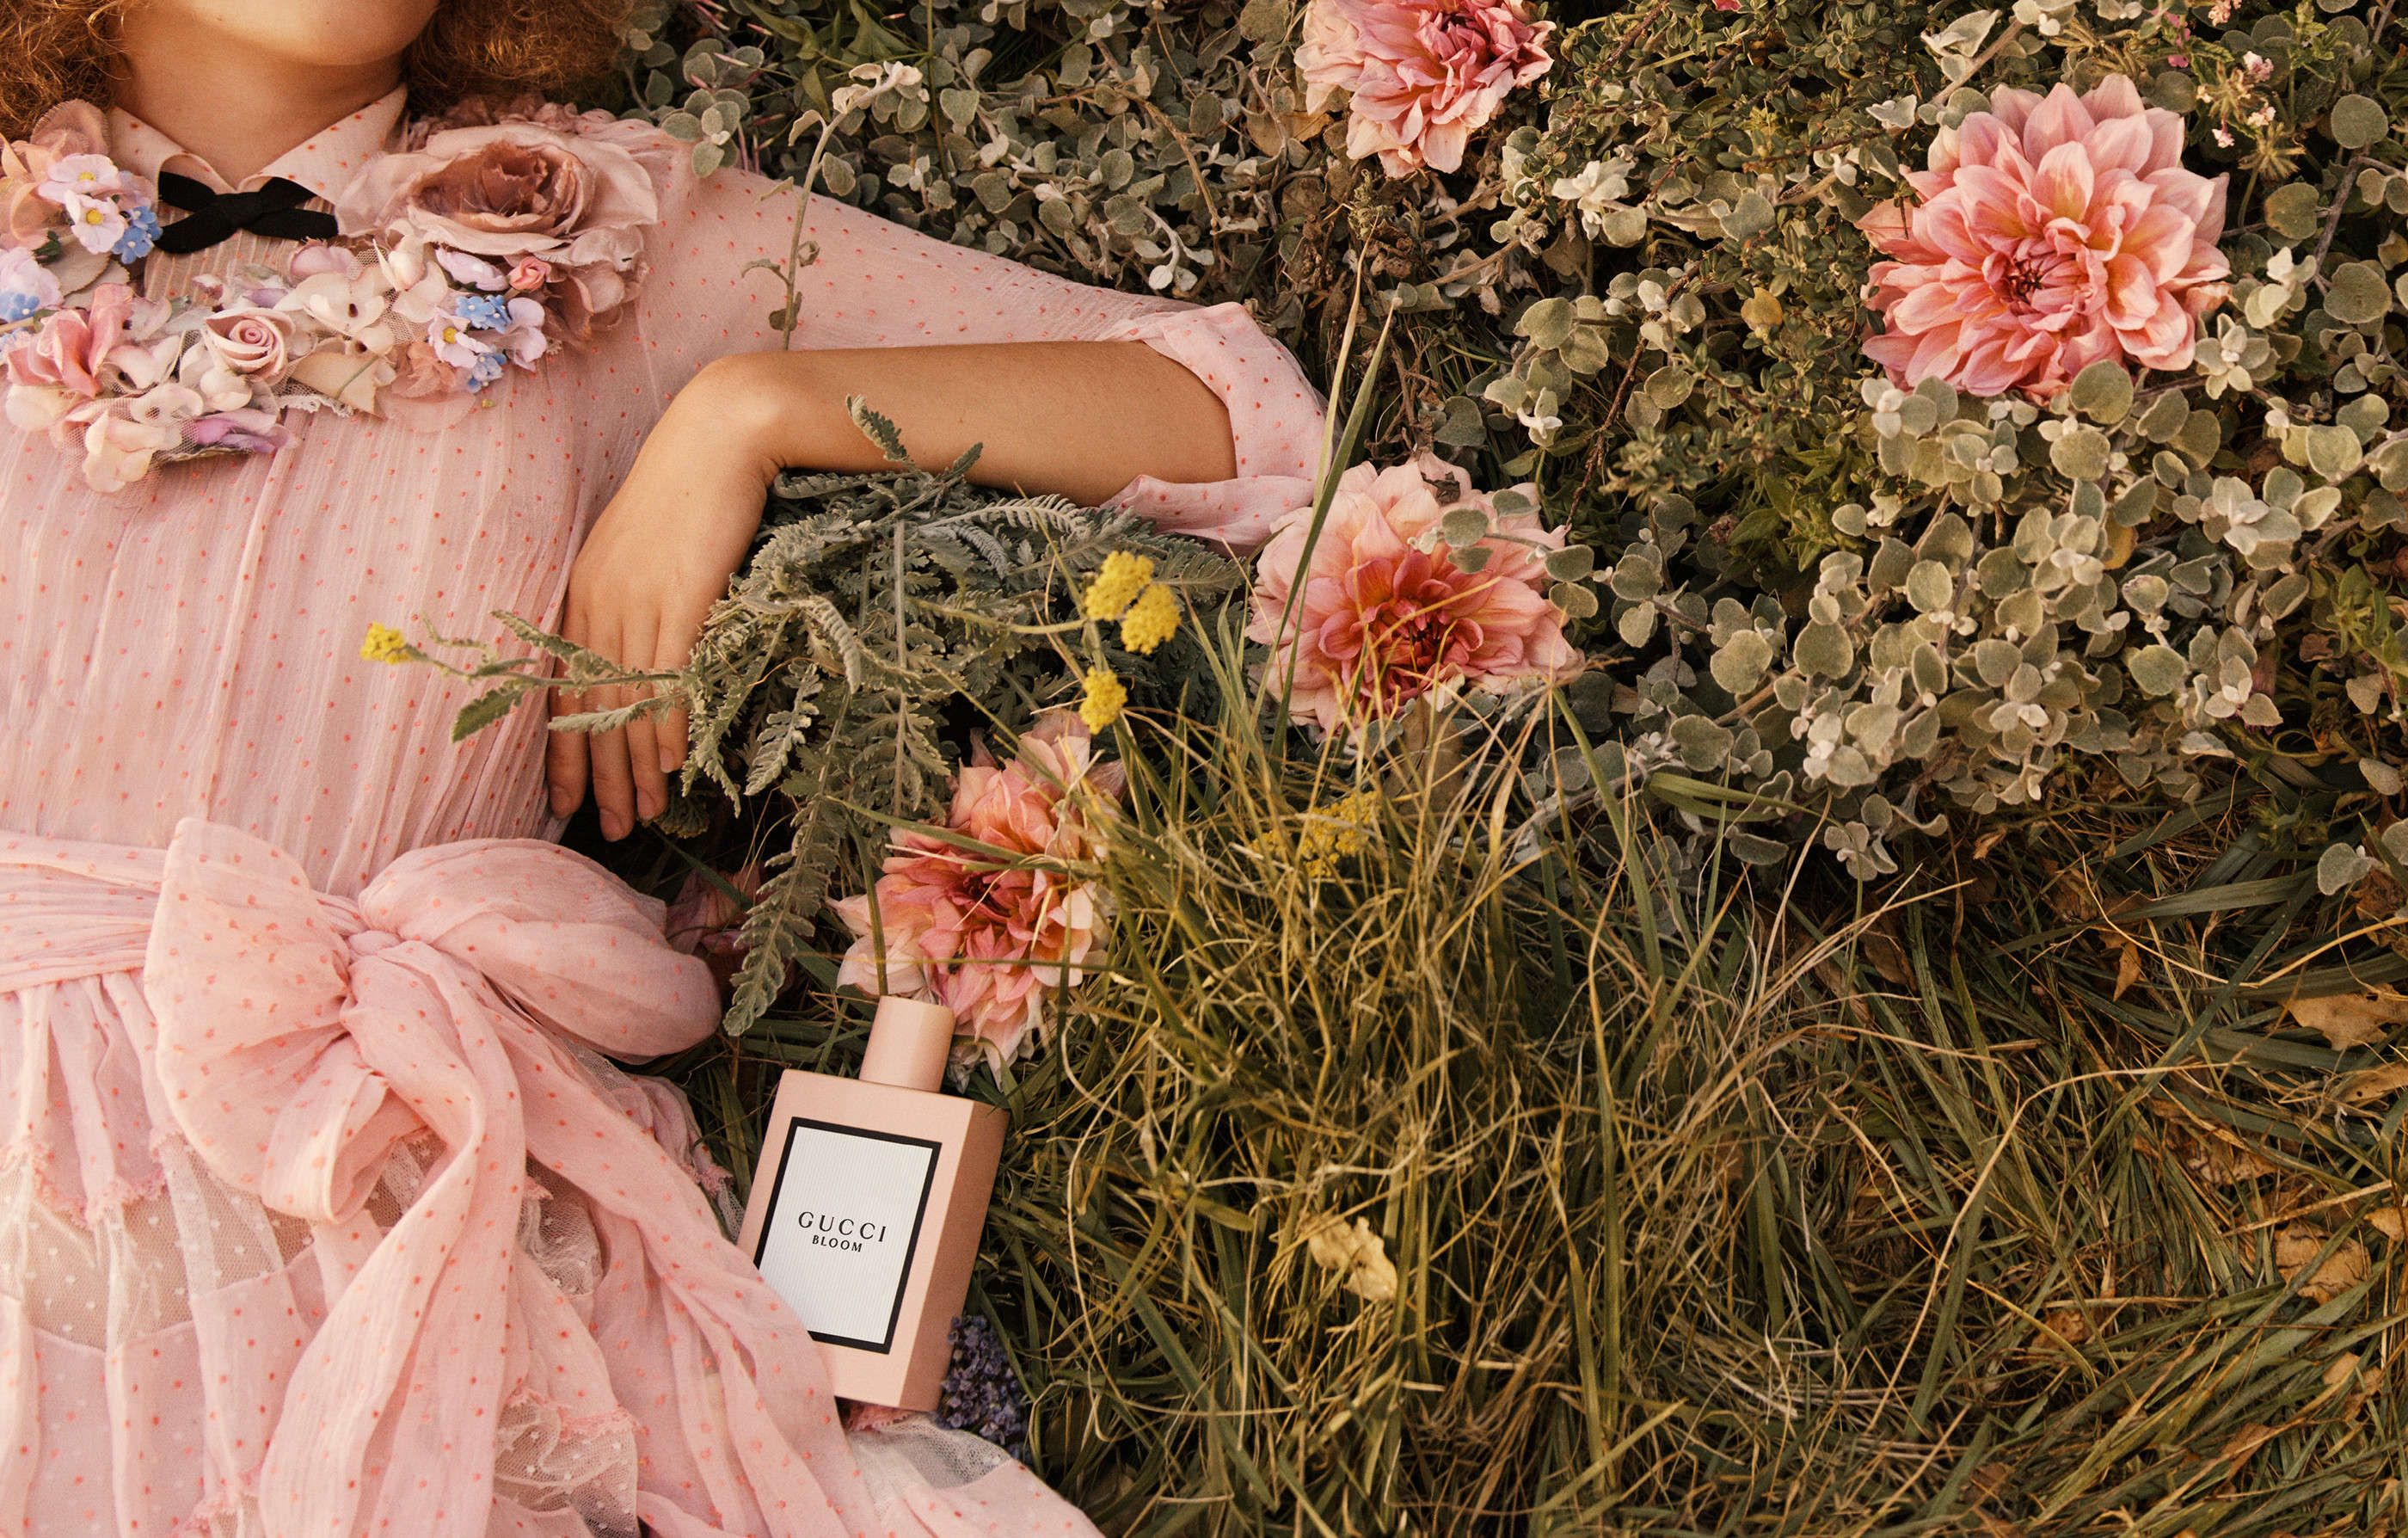 a0f04c473 Gucci debuts 'Bloom' Perfume Campaign and Opens Harrods Pop-up ...